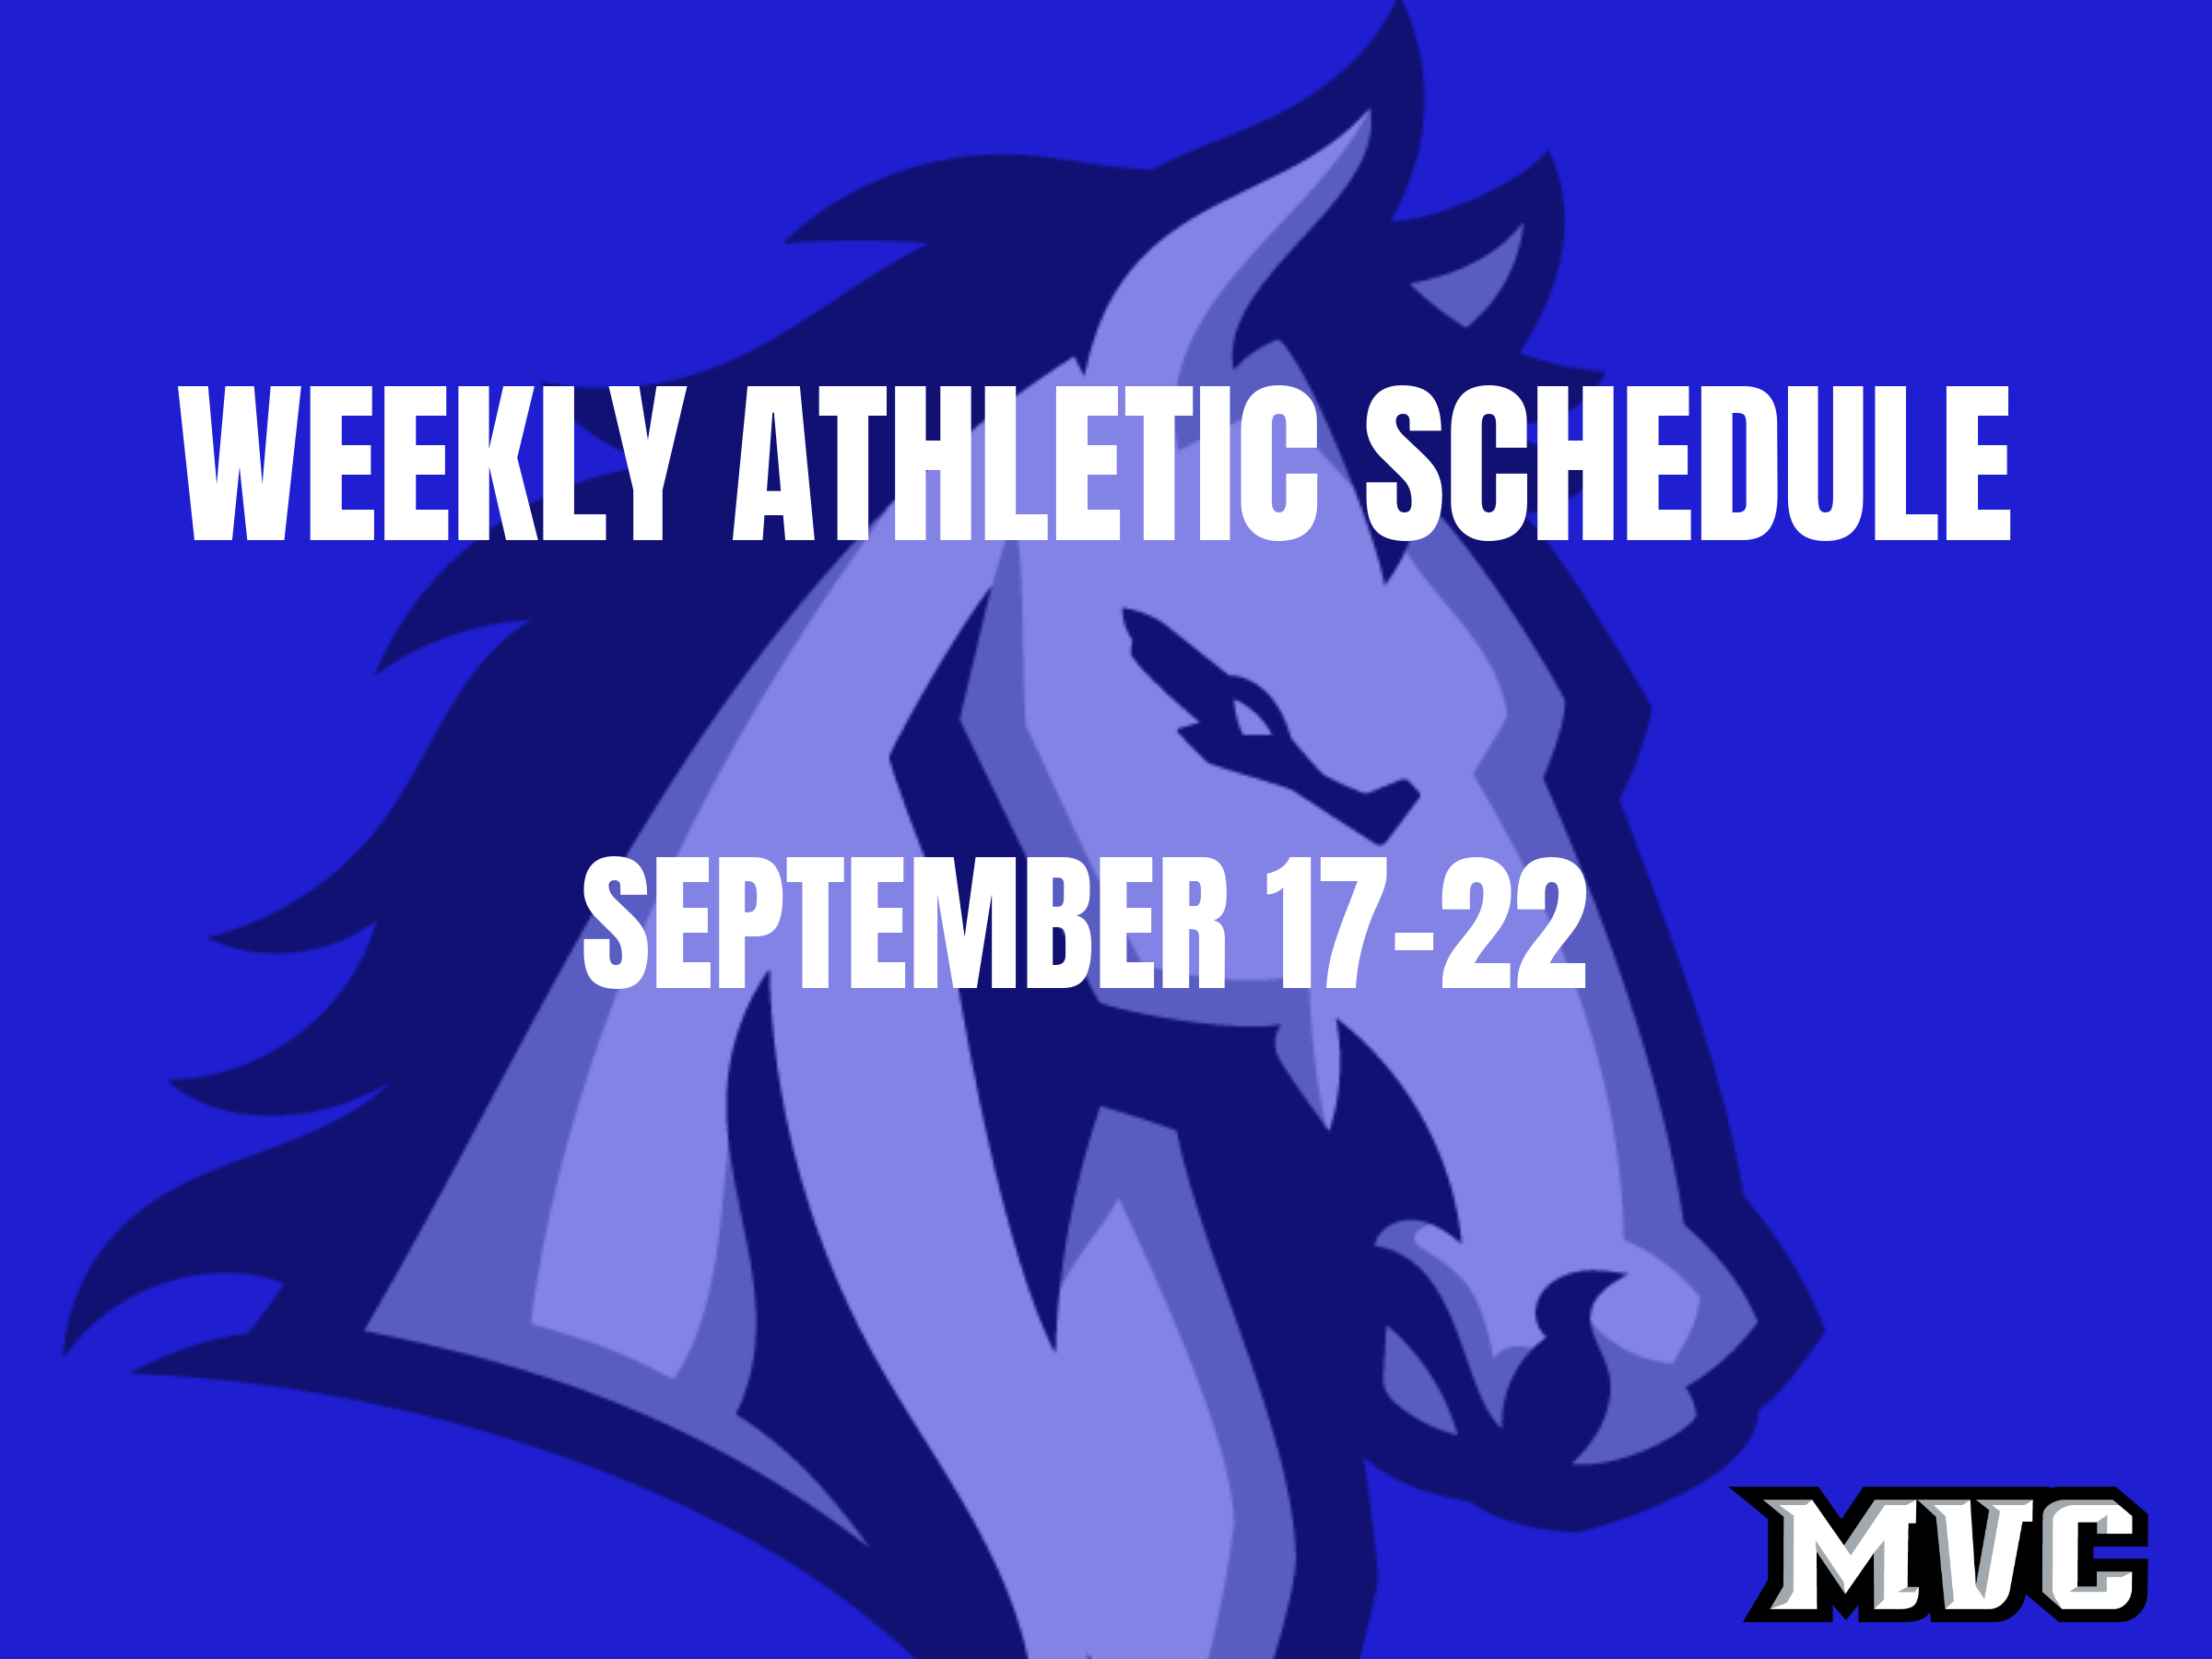 Weekly Athletic Events for September 17-22